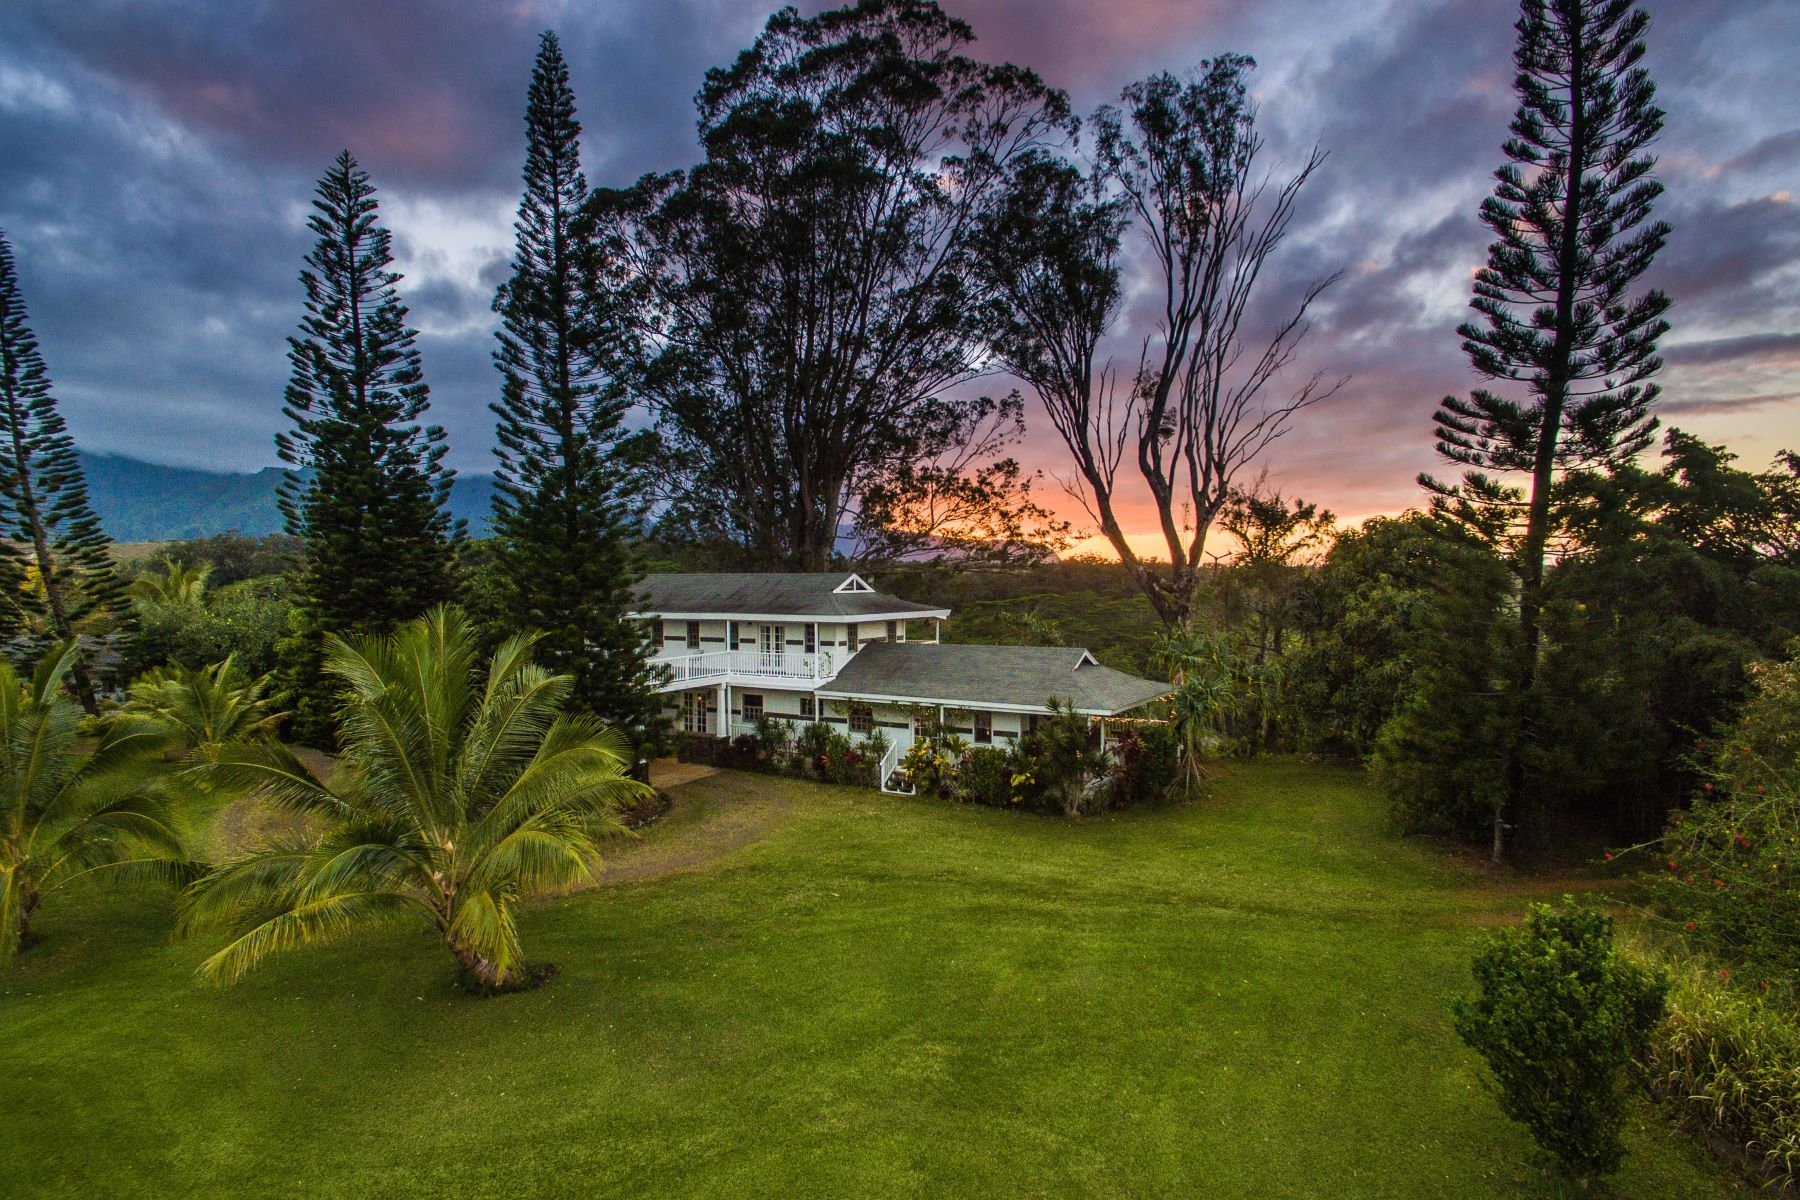 Casa Unifamiliar por un Venta en Kauai 5-Acre Multi-Family Estate with Mountain, Waterfall, Sunset & Valley Views 5150 Kahiliholo Road #A Kilauea, Hawaii 96754 Estados Unidos